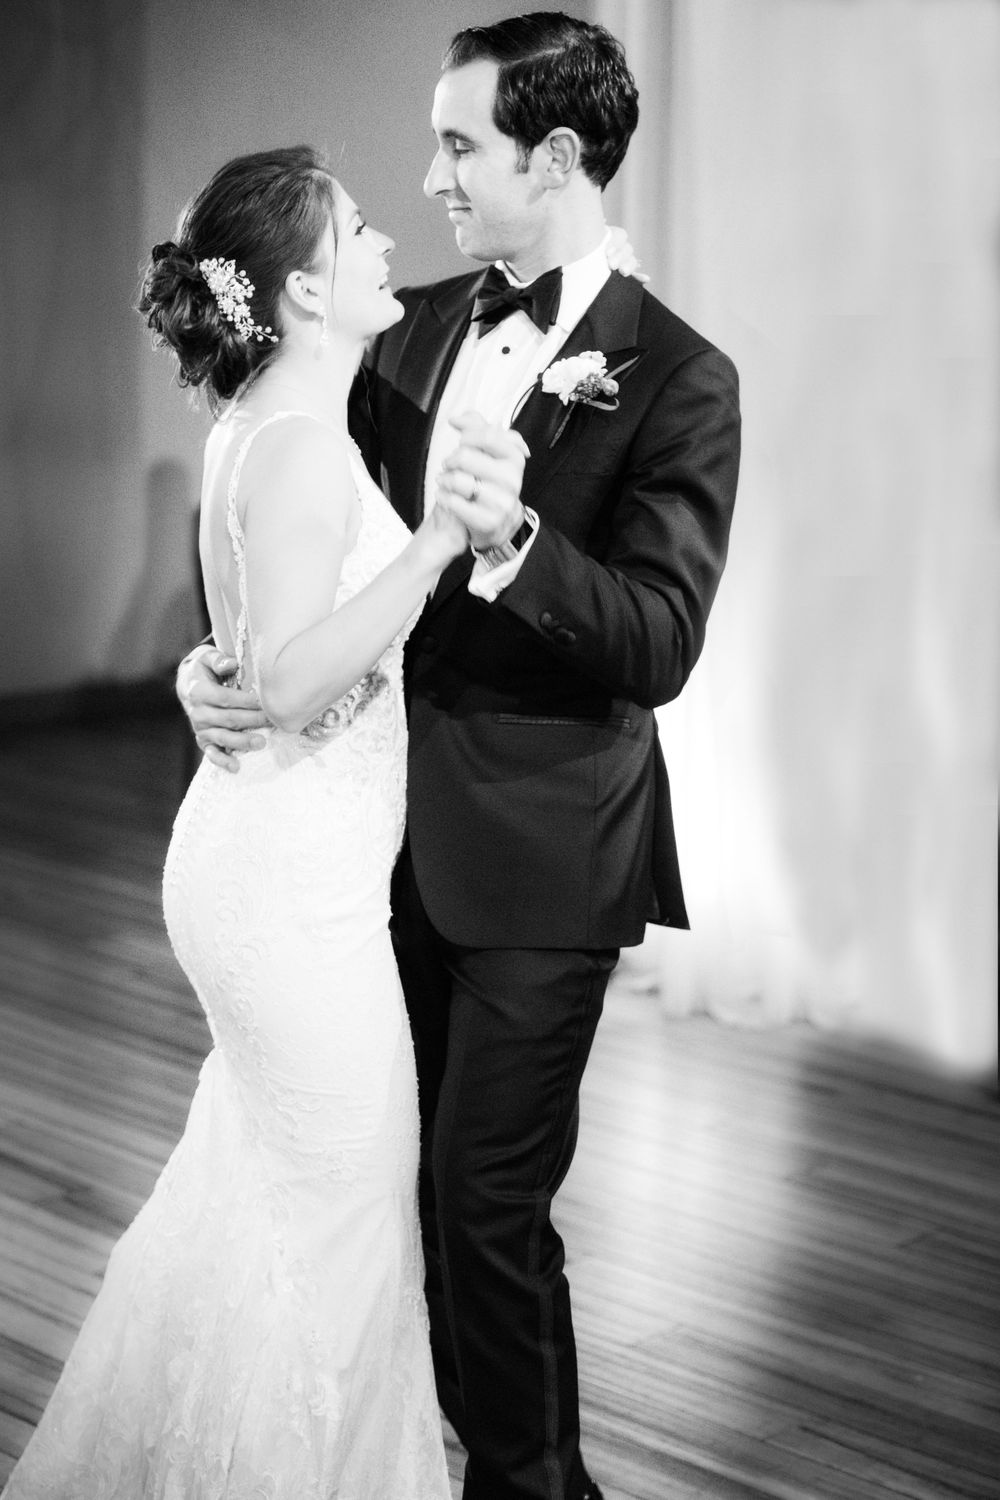 wedding photography, phila photography, jeremiad media, jere paolini, philadelphia, philly